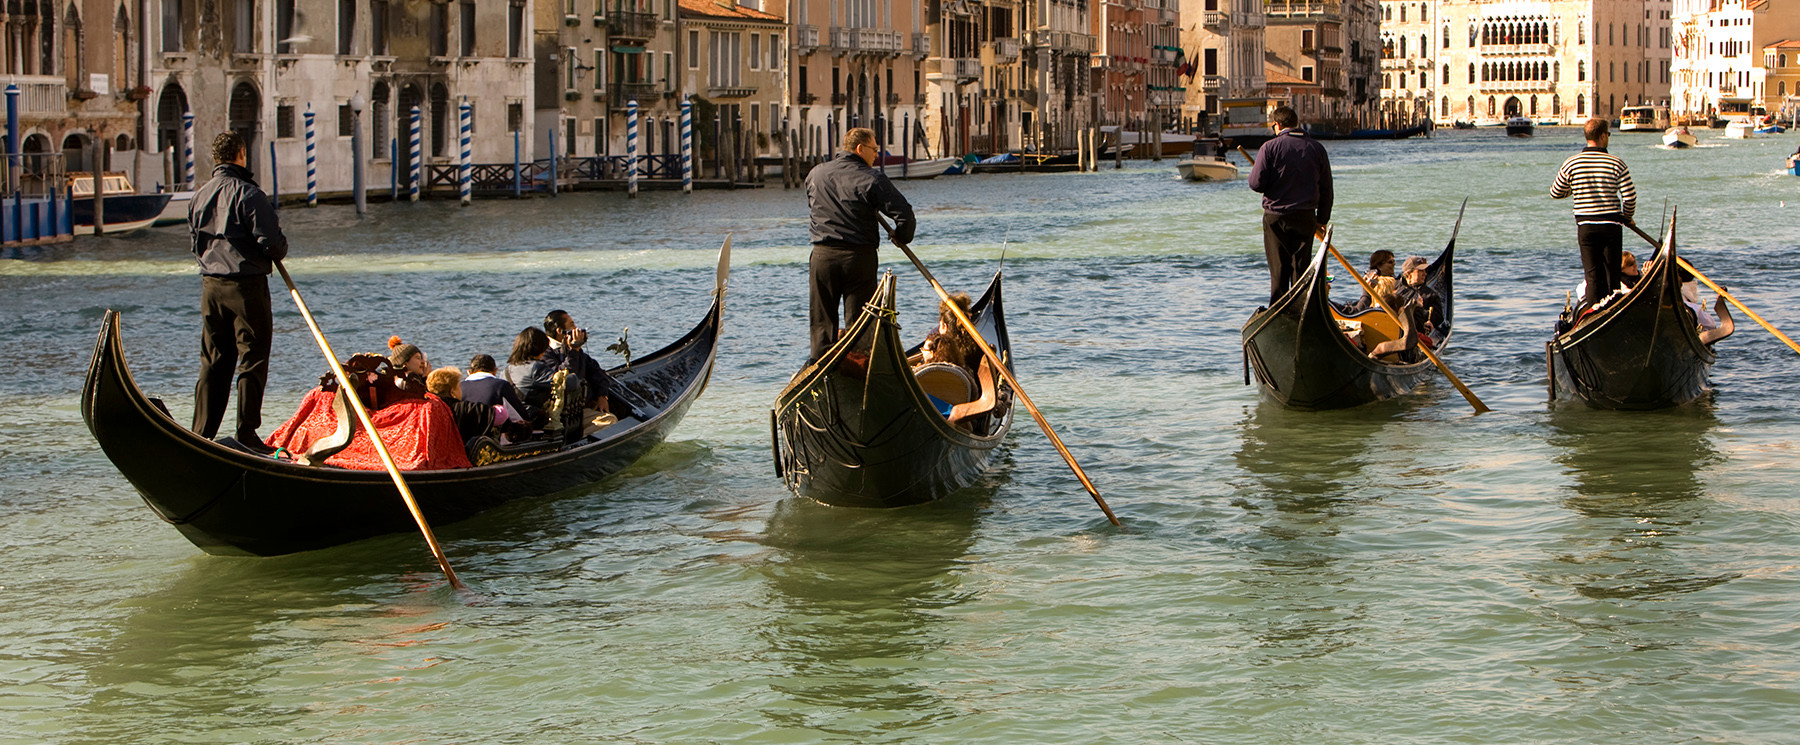 Gondoliers, Grand Canal, Venice